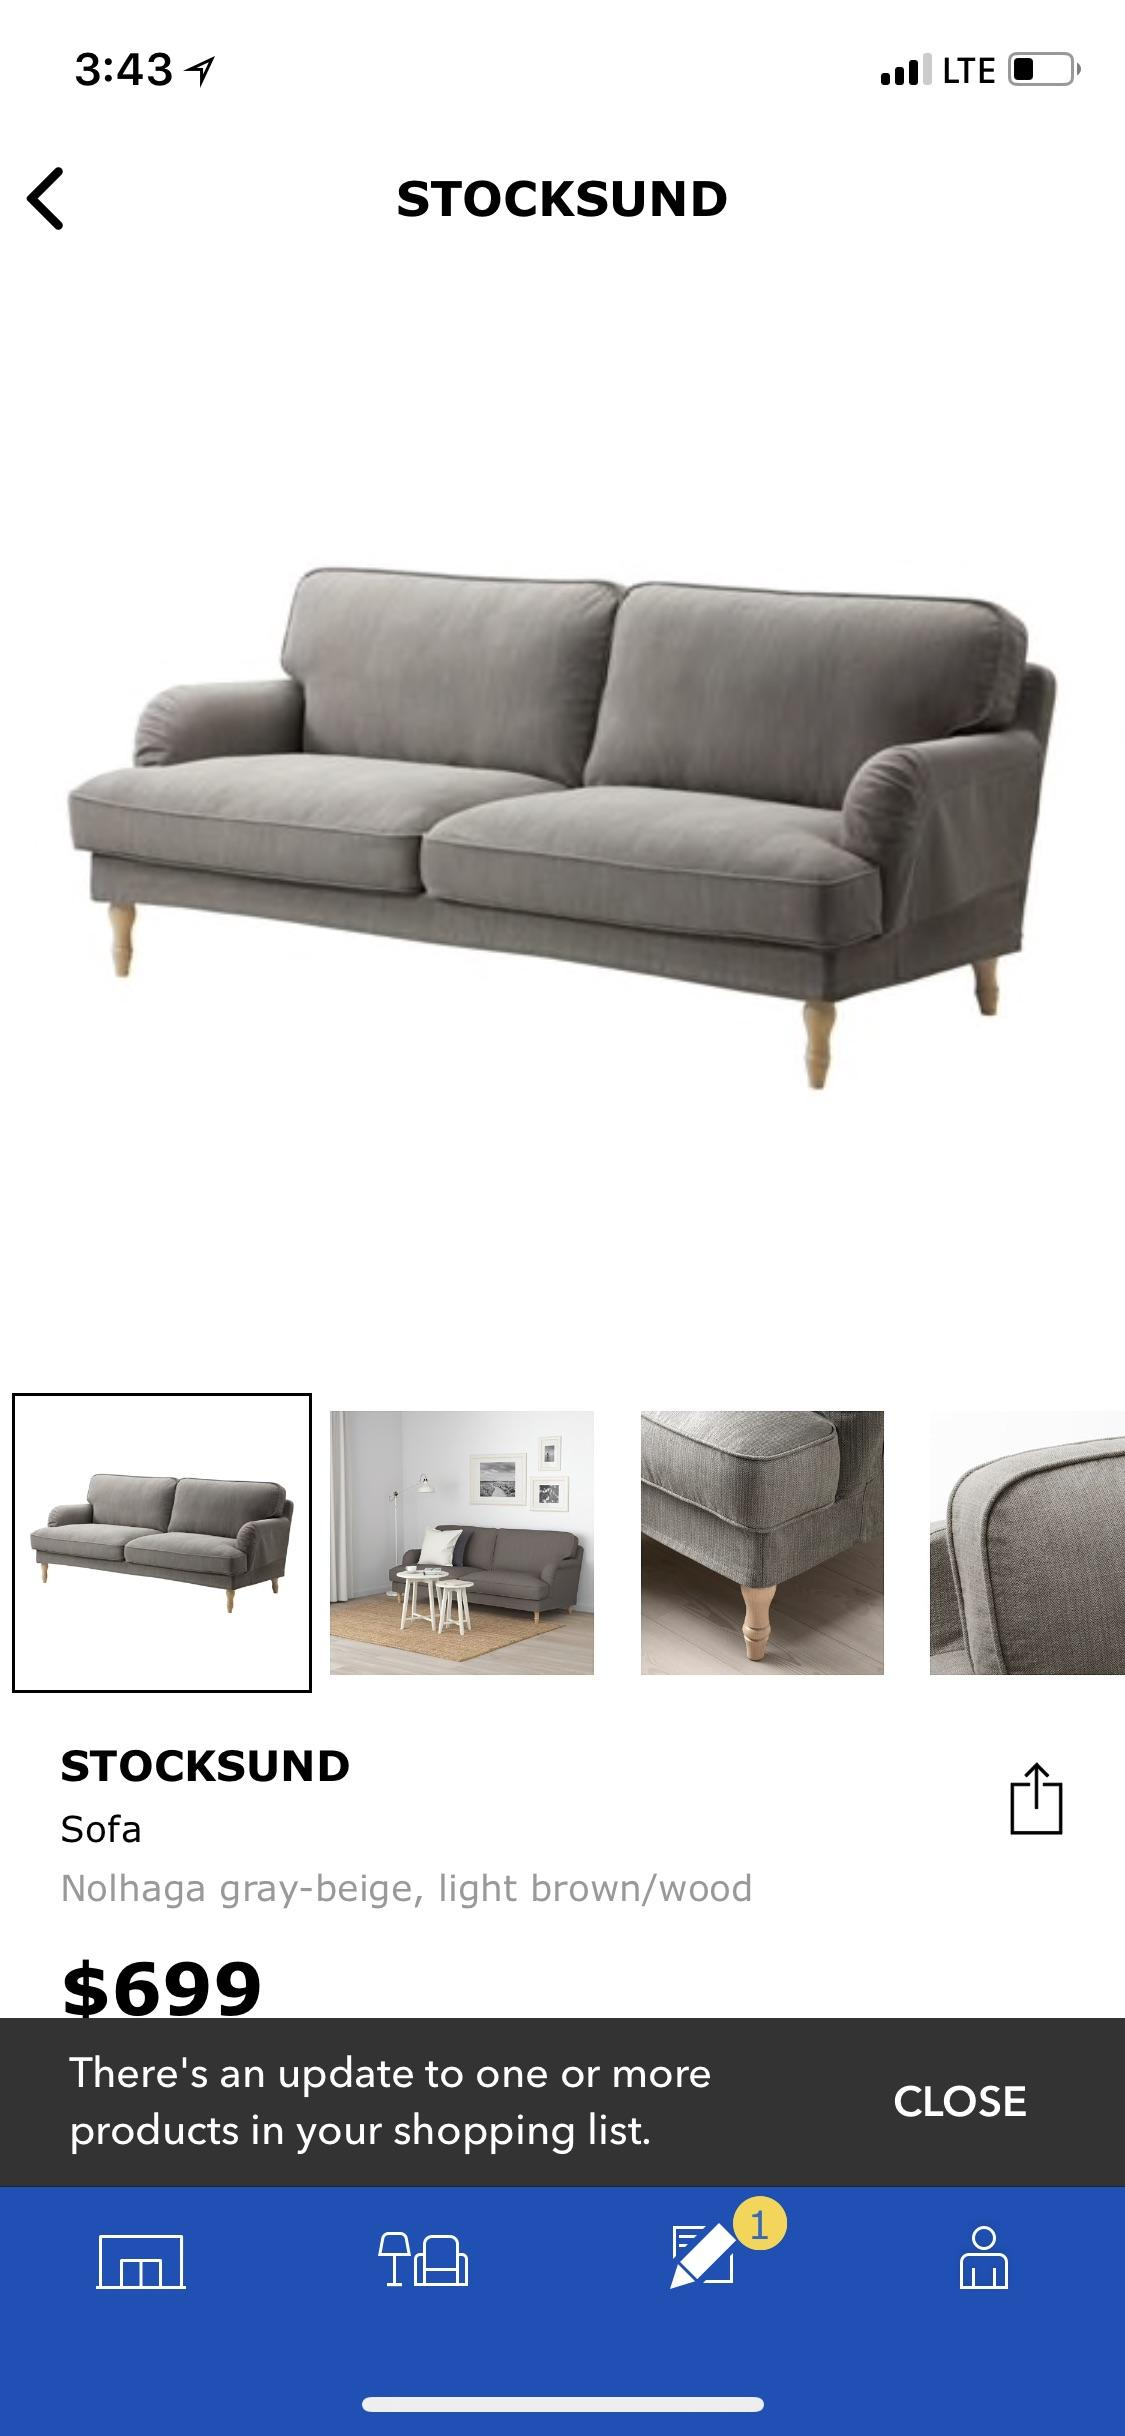 Sofa Couch Reddit Has Anyone Purchased The Stocksund Sofa Thoughts And Pics